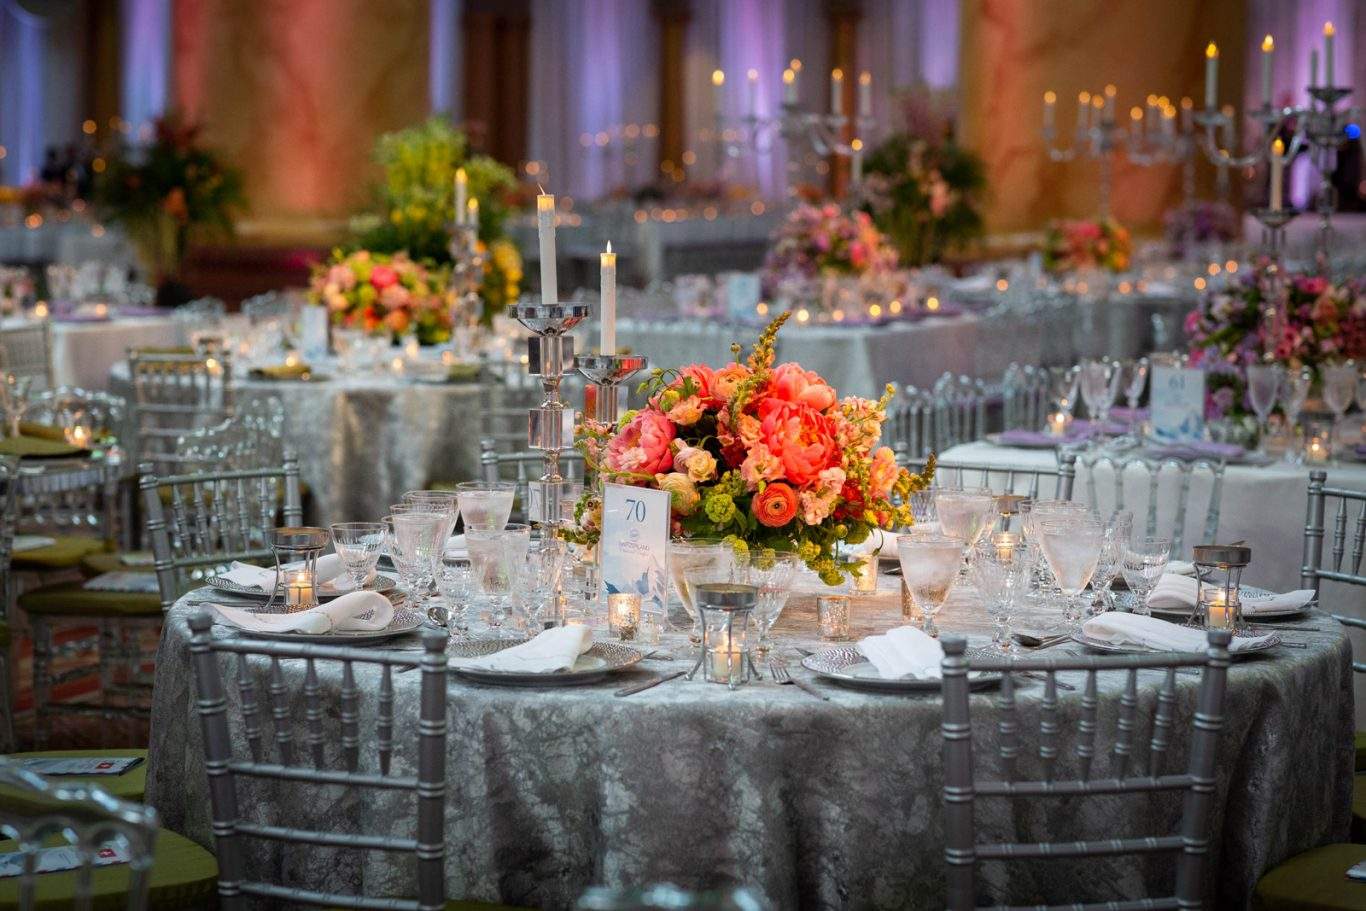 Prevent Cancer Foundation® Annual Spring Gala raises more than $1.5 million